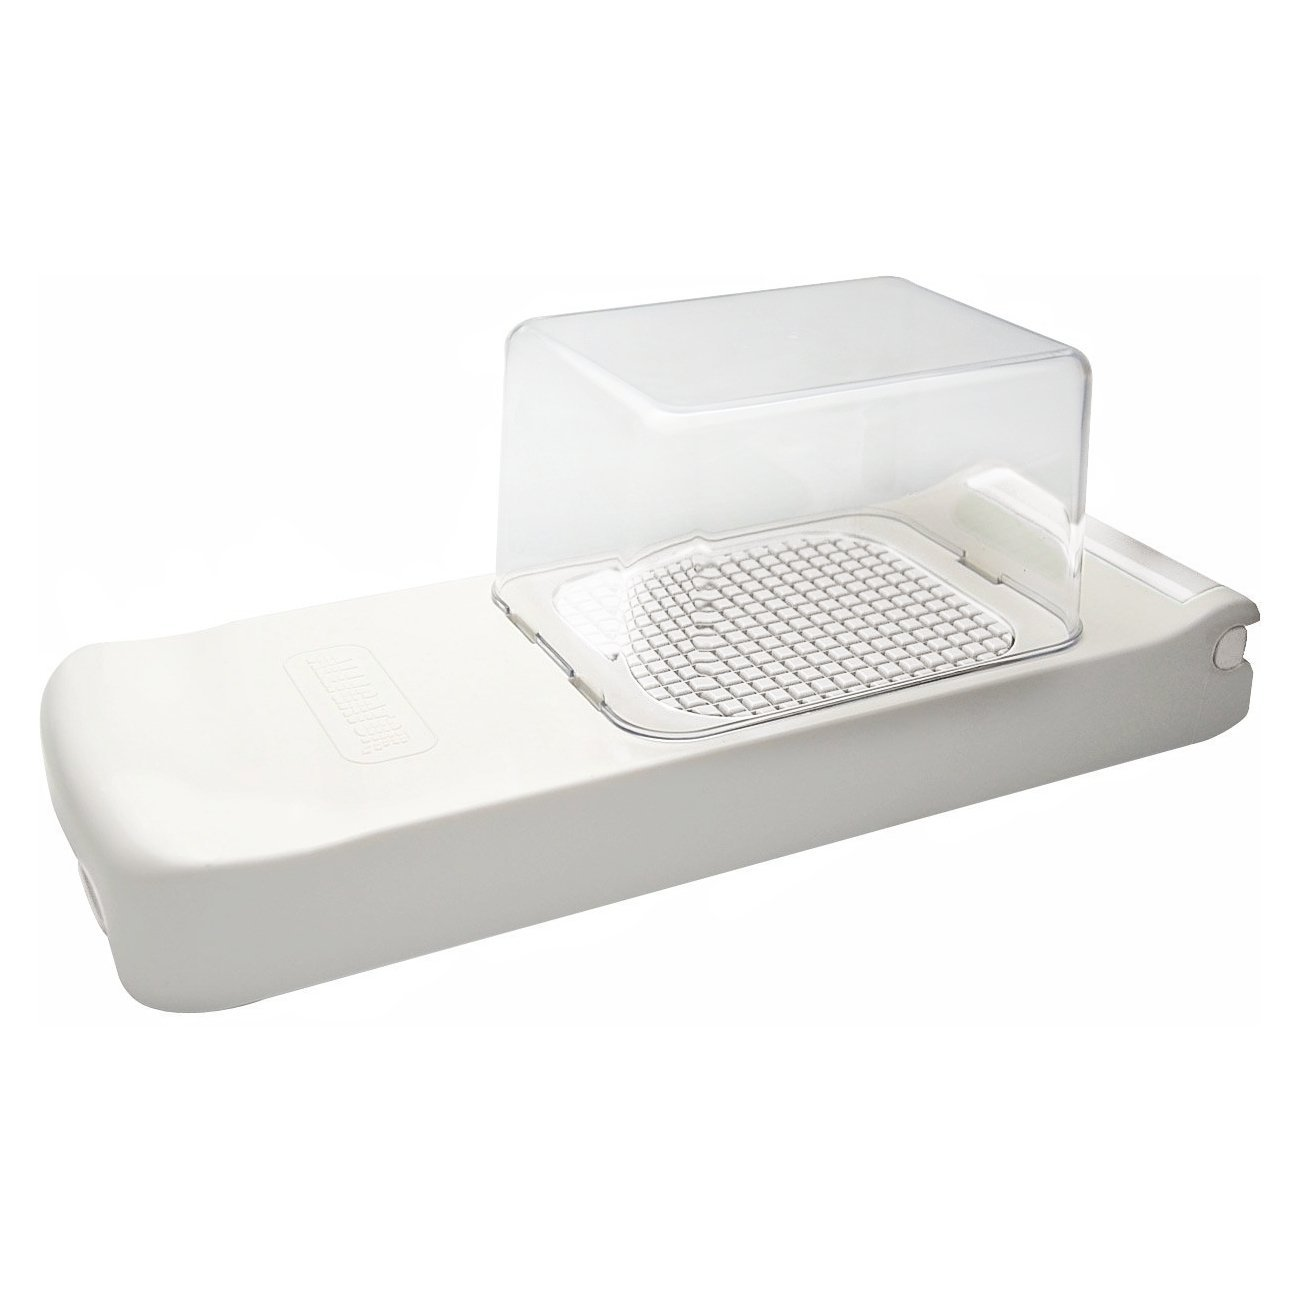 Alligator 11-1 4-Inch Dicer with Collector, White by Alligator